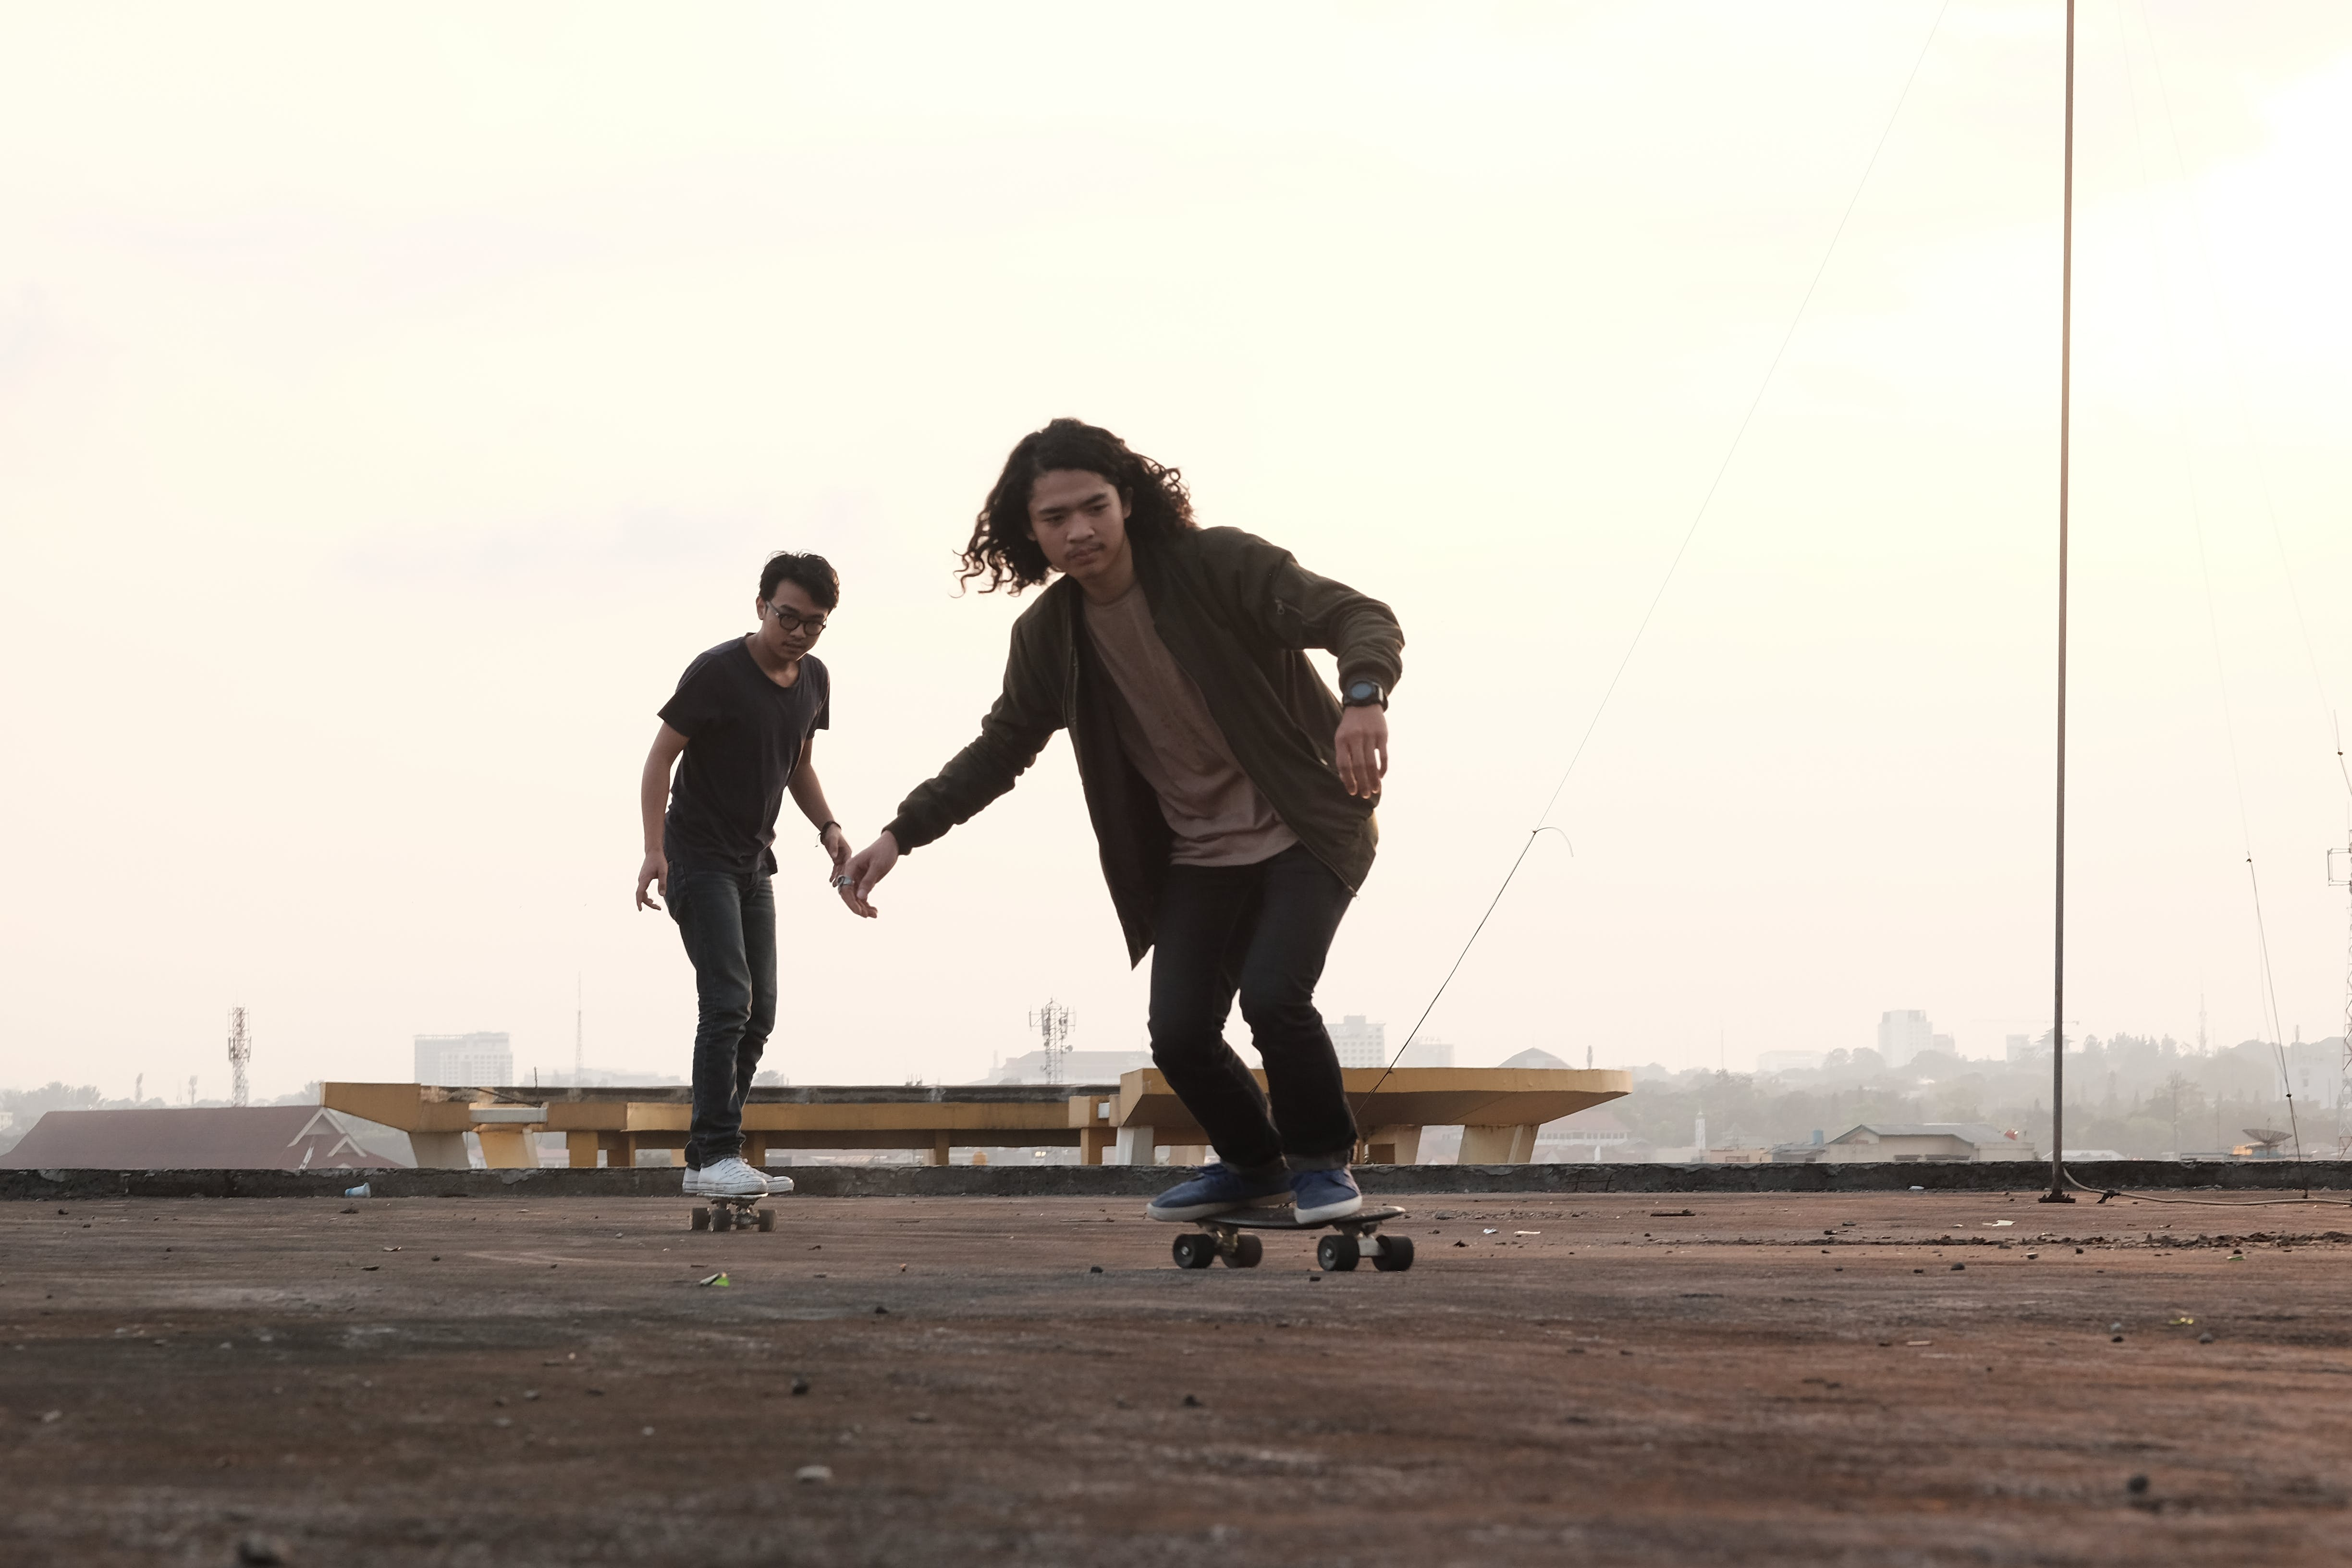 Man Skating on Gray Concrete Surface